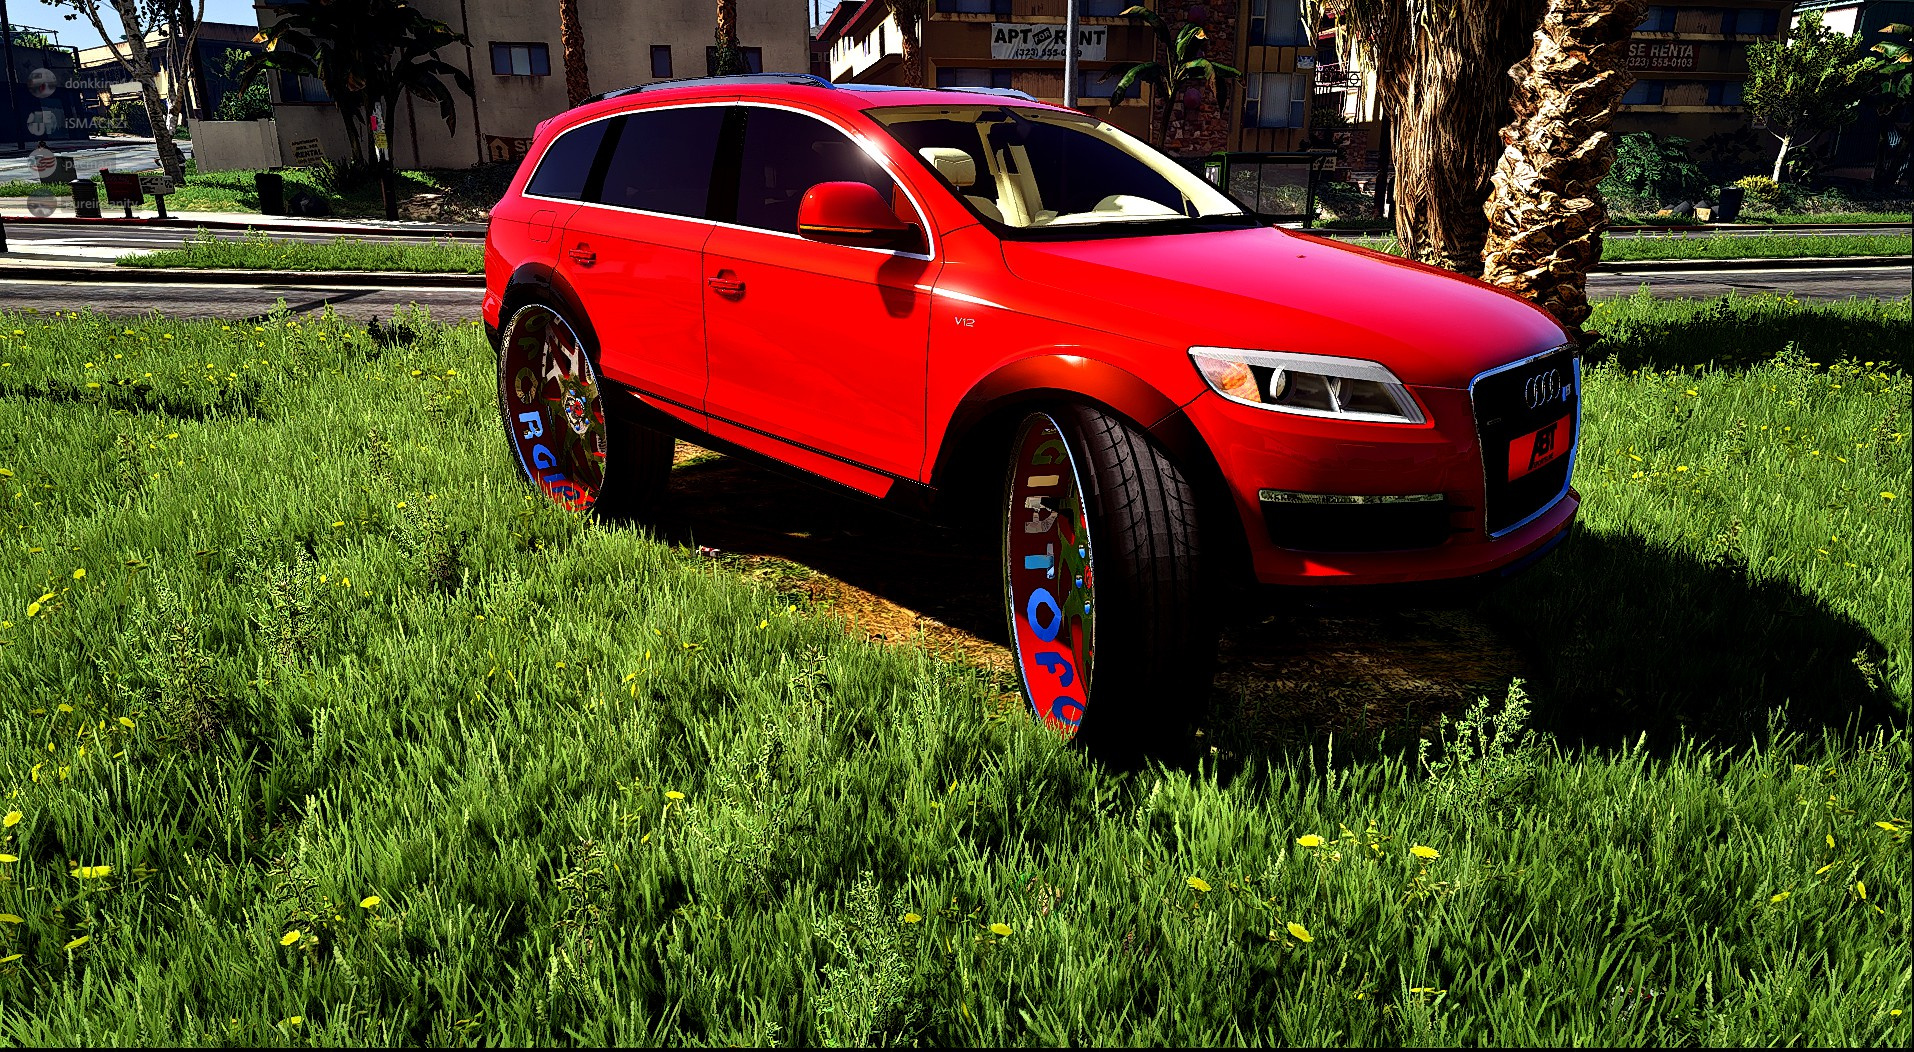 09 Audi Q7 As7 Donk Add On Replace Gta5 Mods Com HD Wallpapers Download free images and photos [musssic.tk]